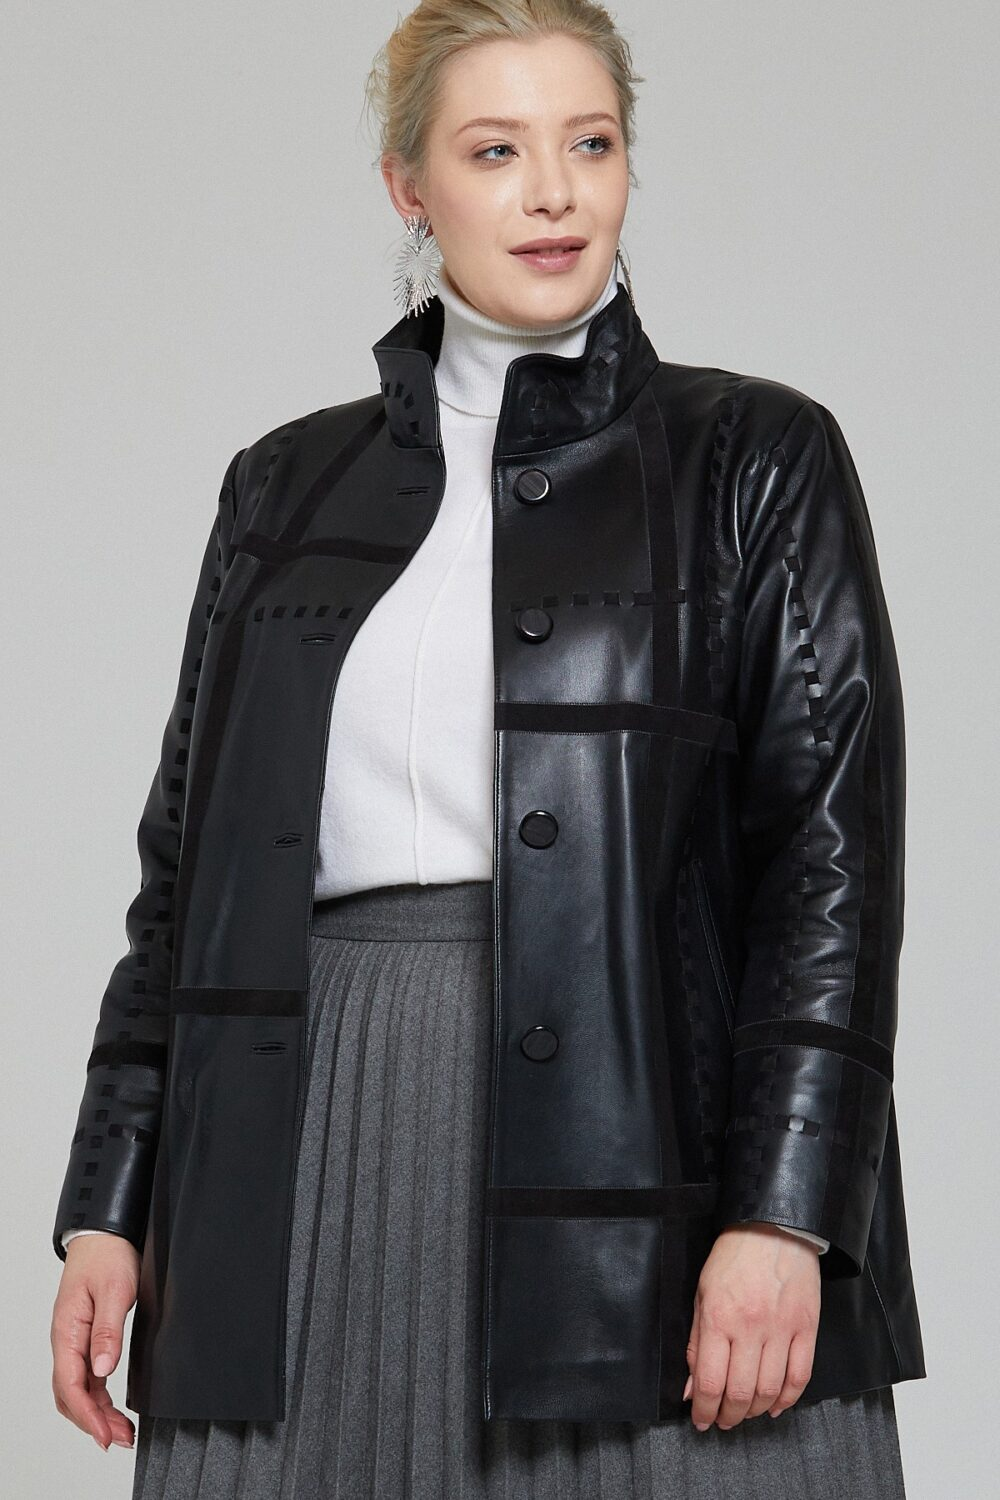 Reiss Womens Leather Jacket